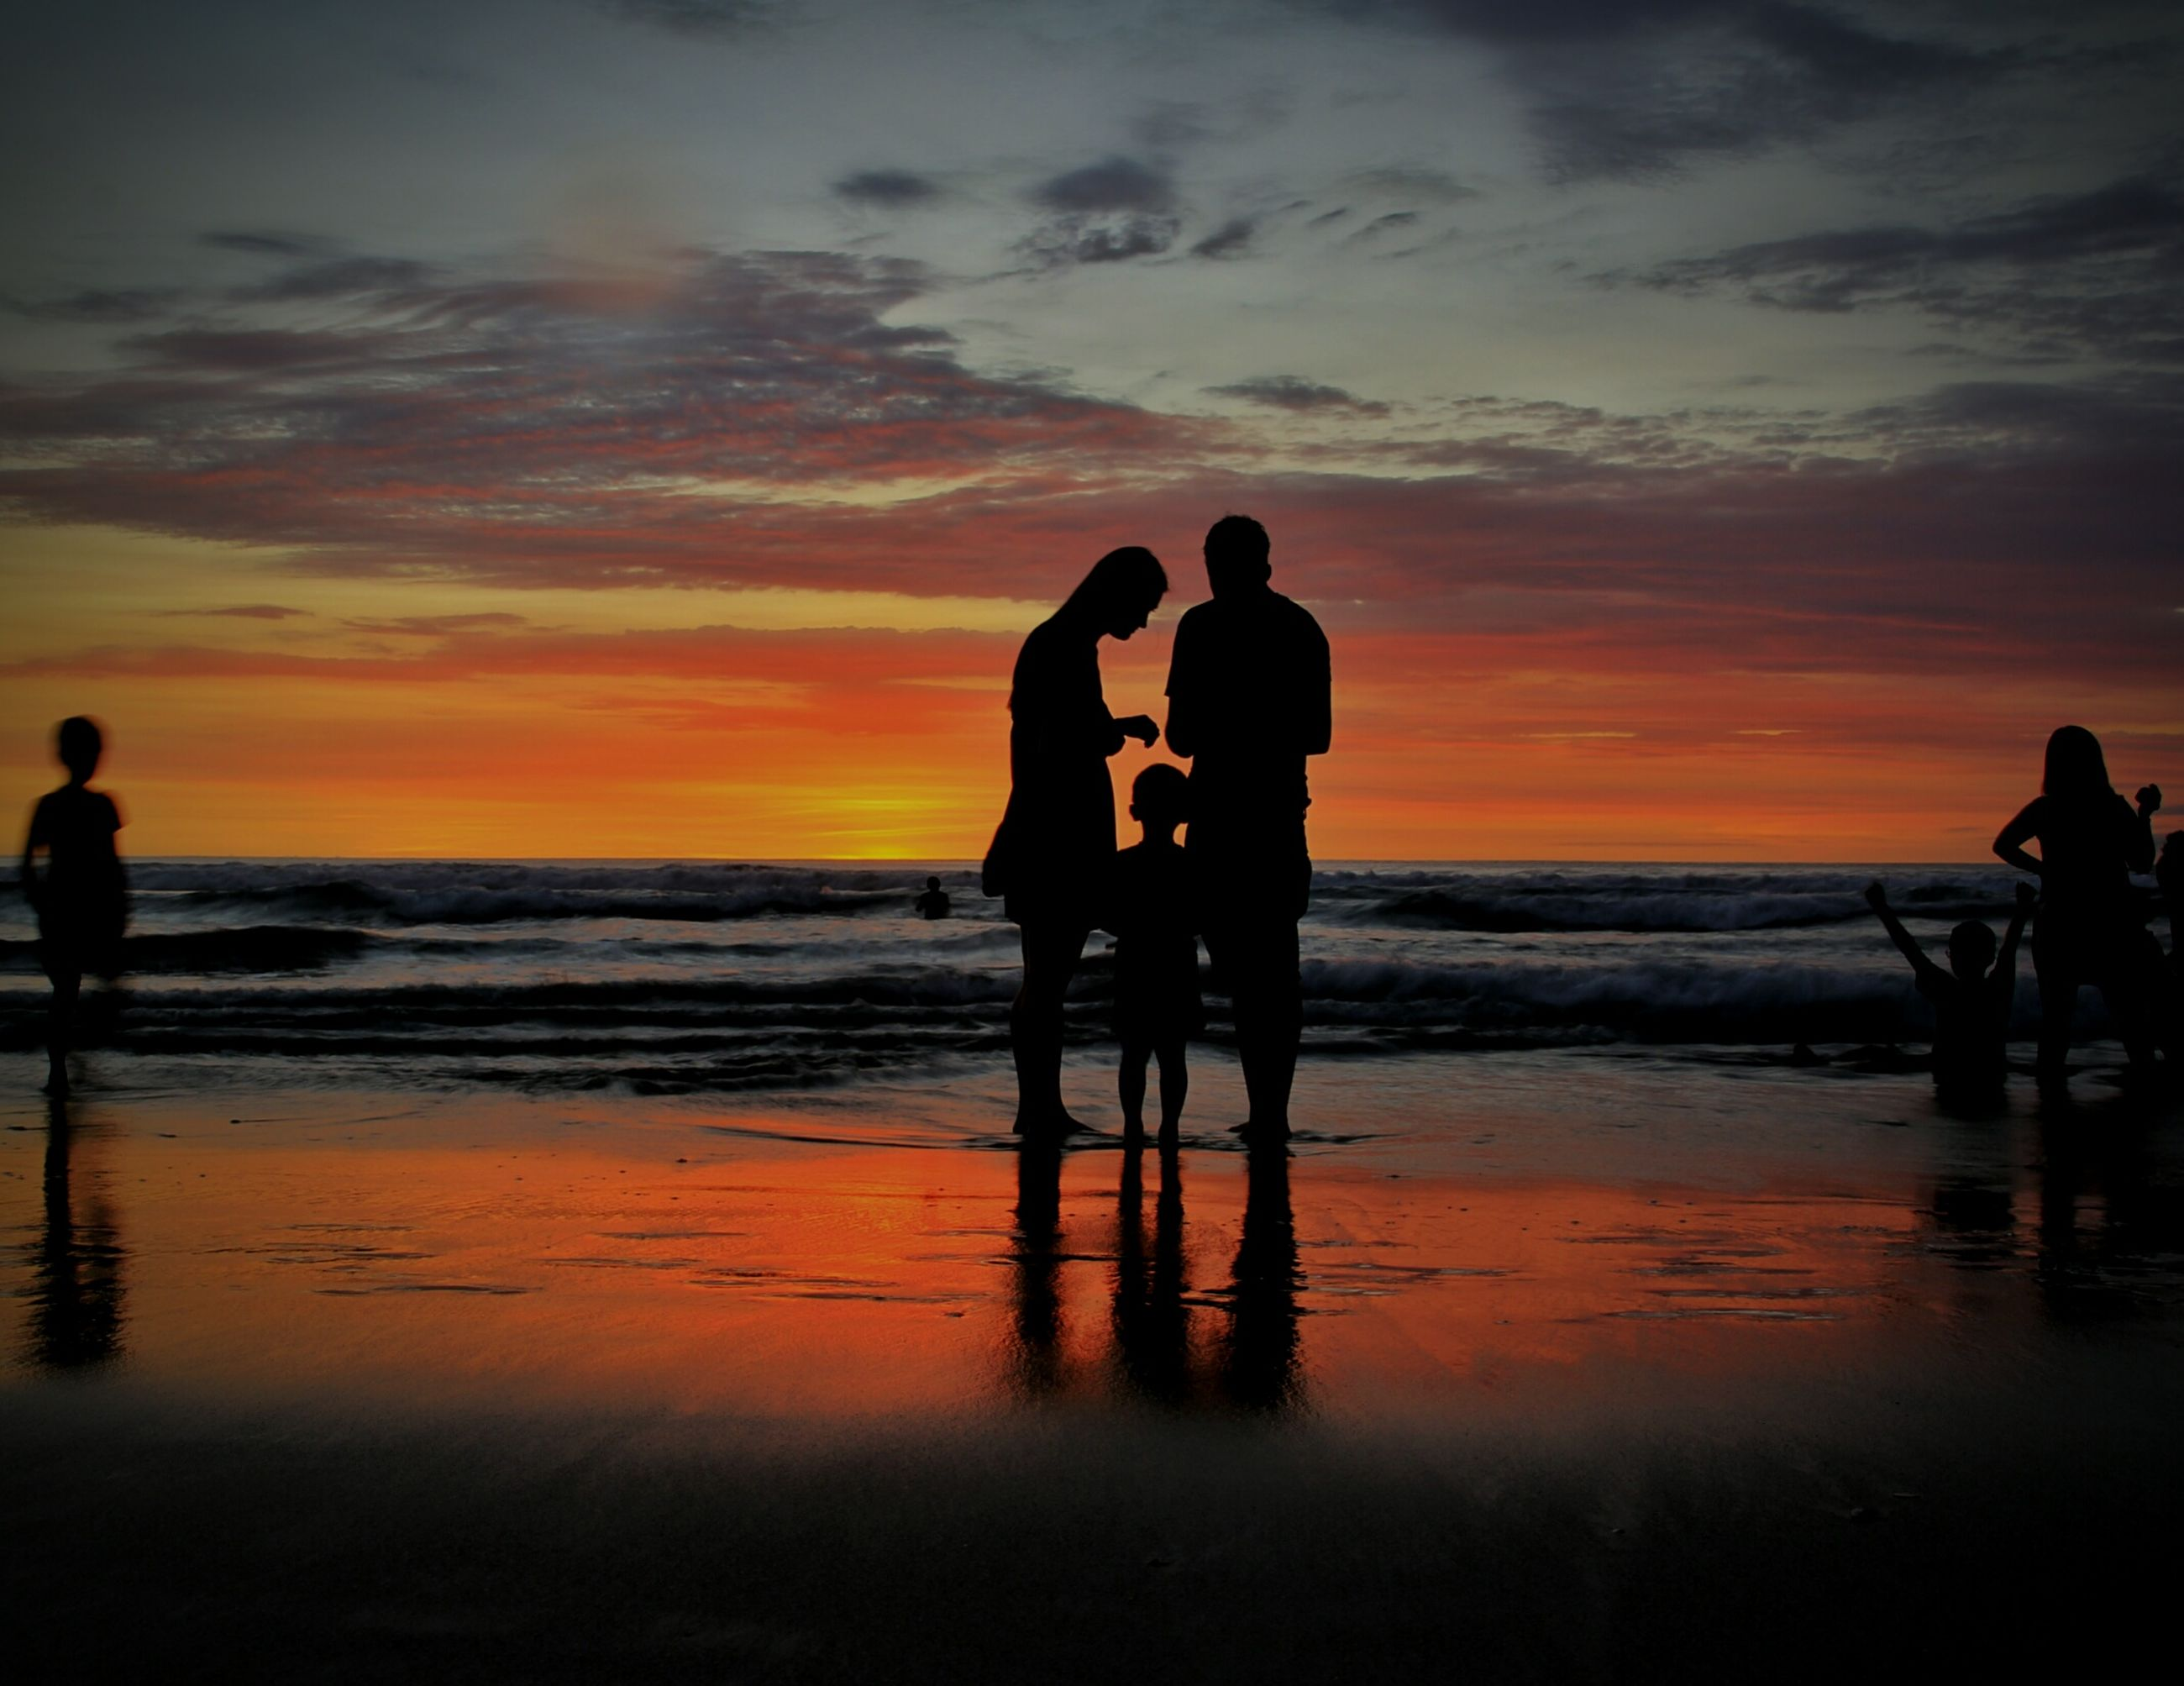 sunset, sea, water, silhouette, horizon over water, beach, orange color, sky, leisure activity, lifestyles, shore, men, scenics, standing, beauty in nature, vacations, tranquil scene, reflection